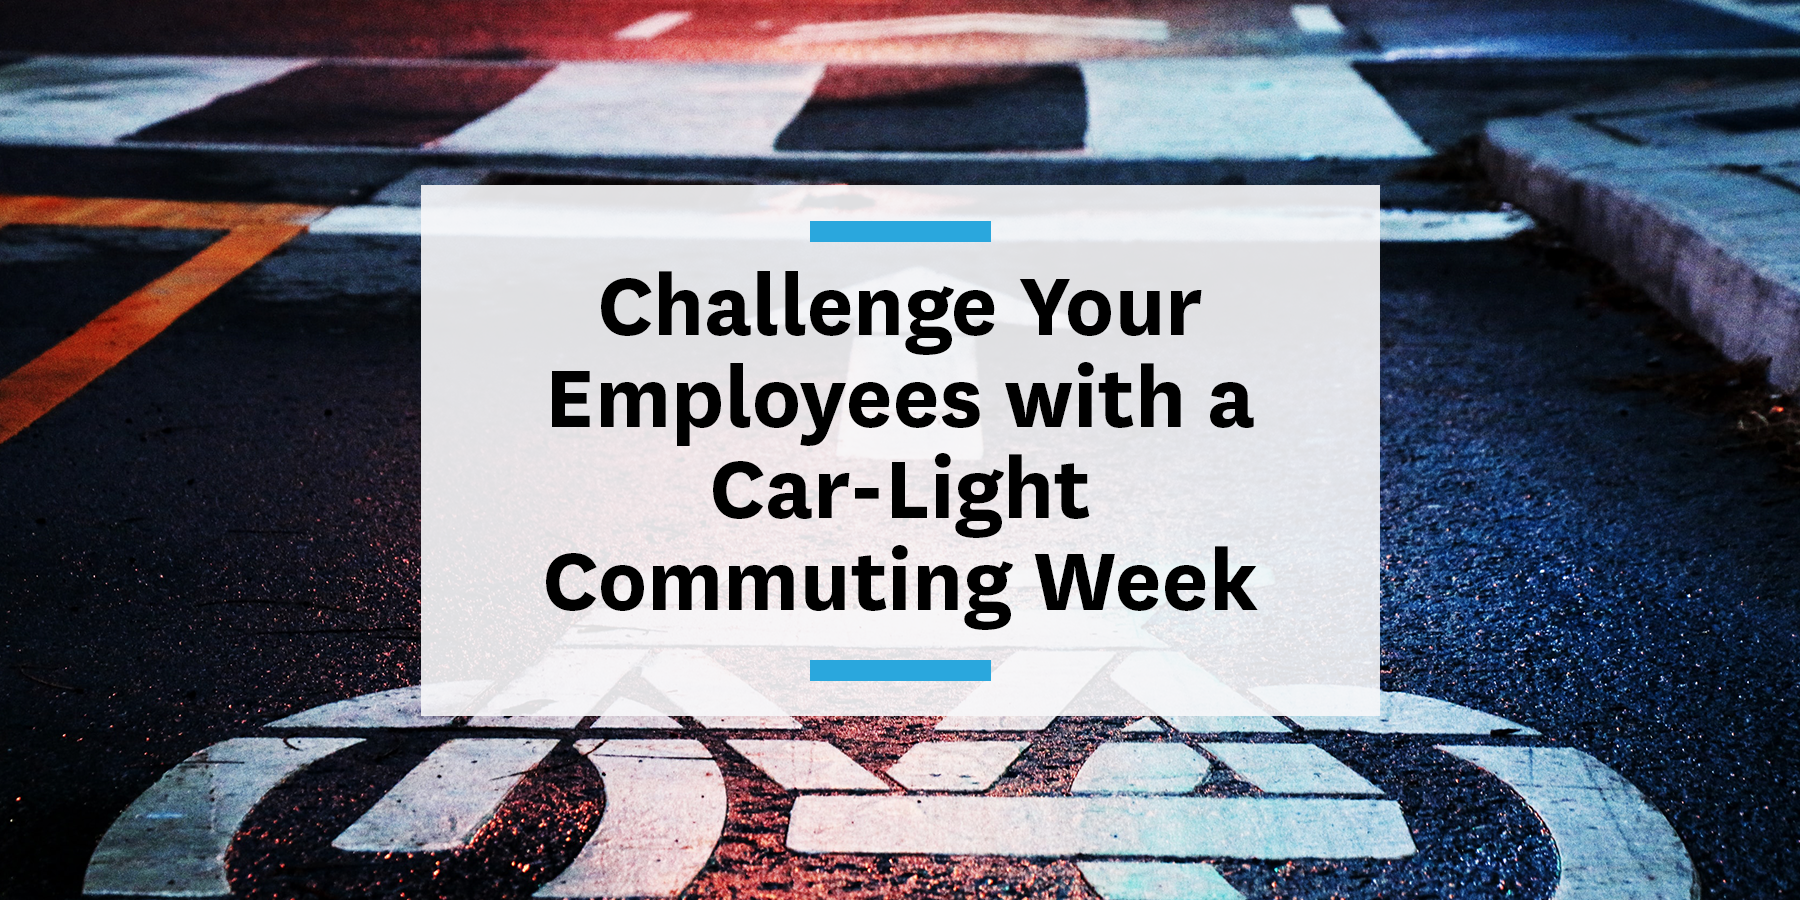 encouraging more sustainable commutes by hosting a car-light commuting week